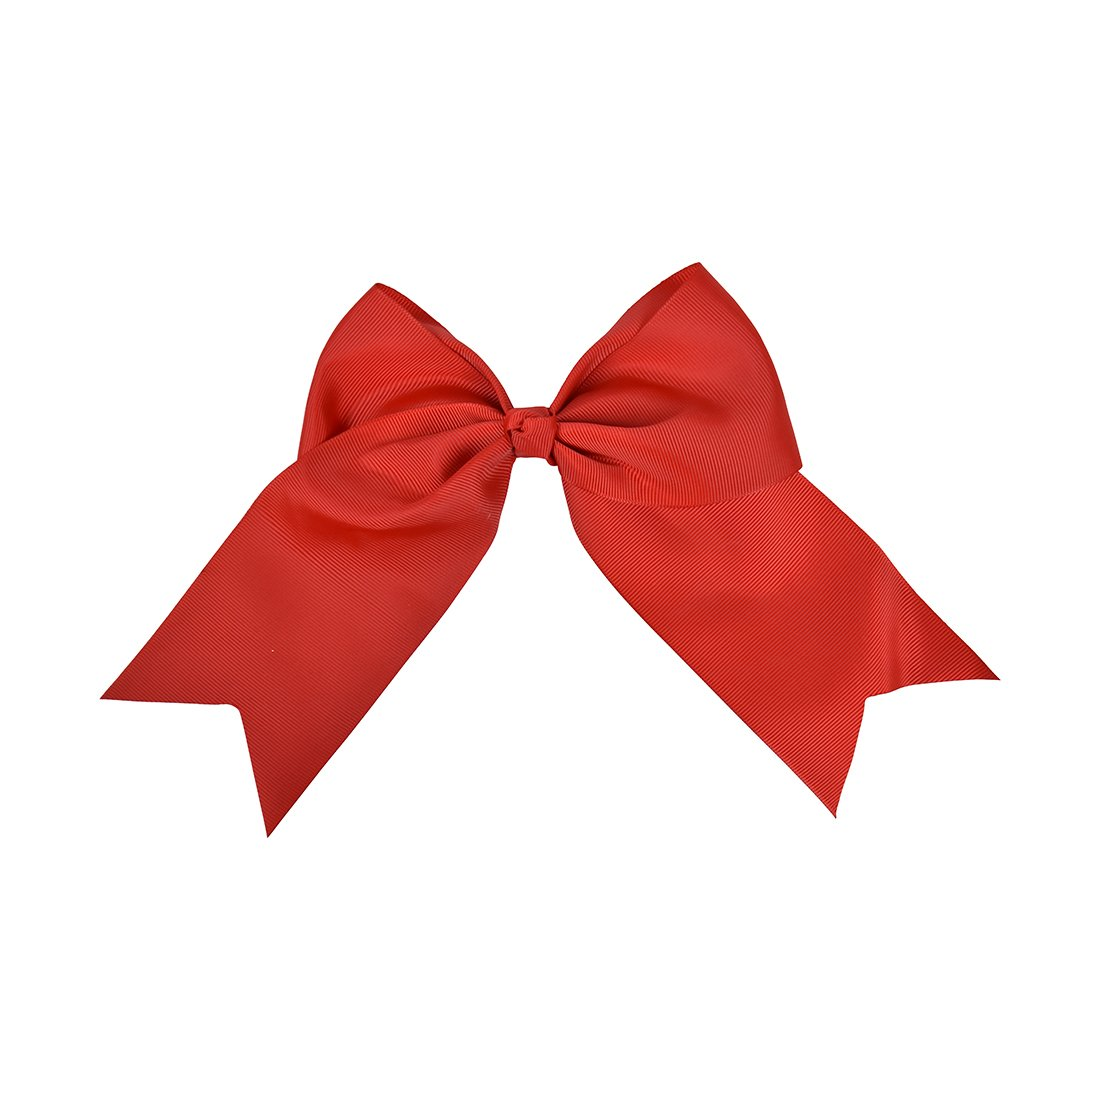 Red Jumbo Bow Clip with Tails Motique Accessories MTBO0087RD